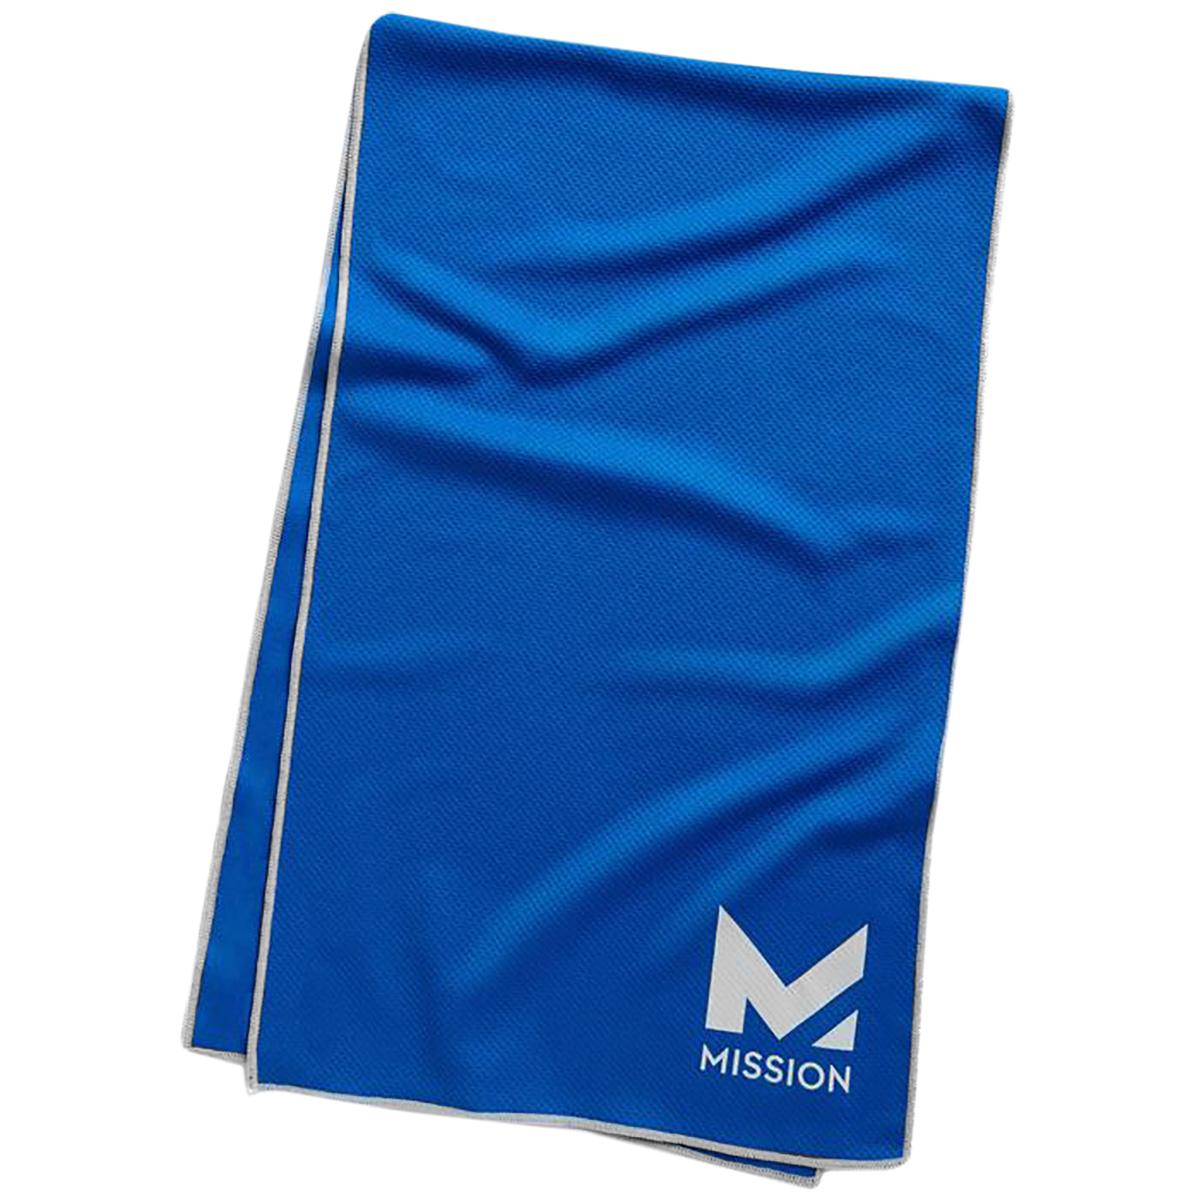 "Mission Athletecare HydroActive Premium Techknit Large Cooling Towel - 10"" x 33"""